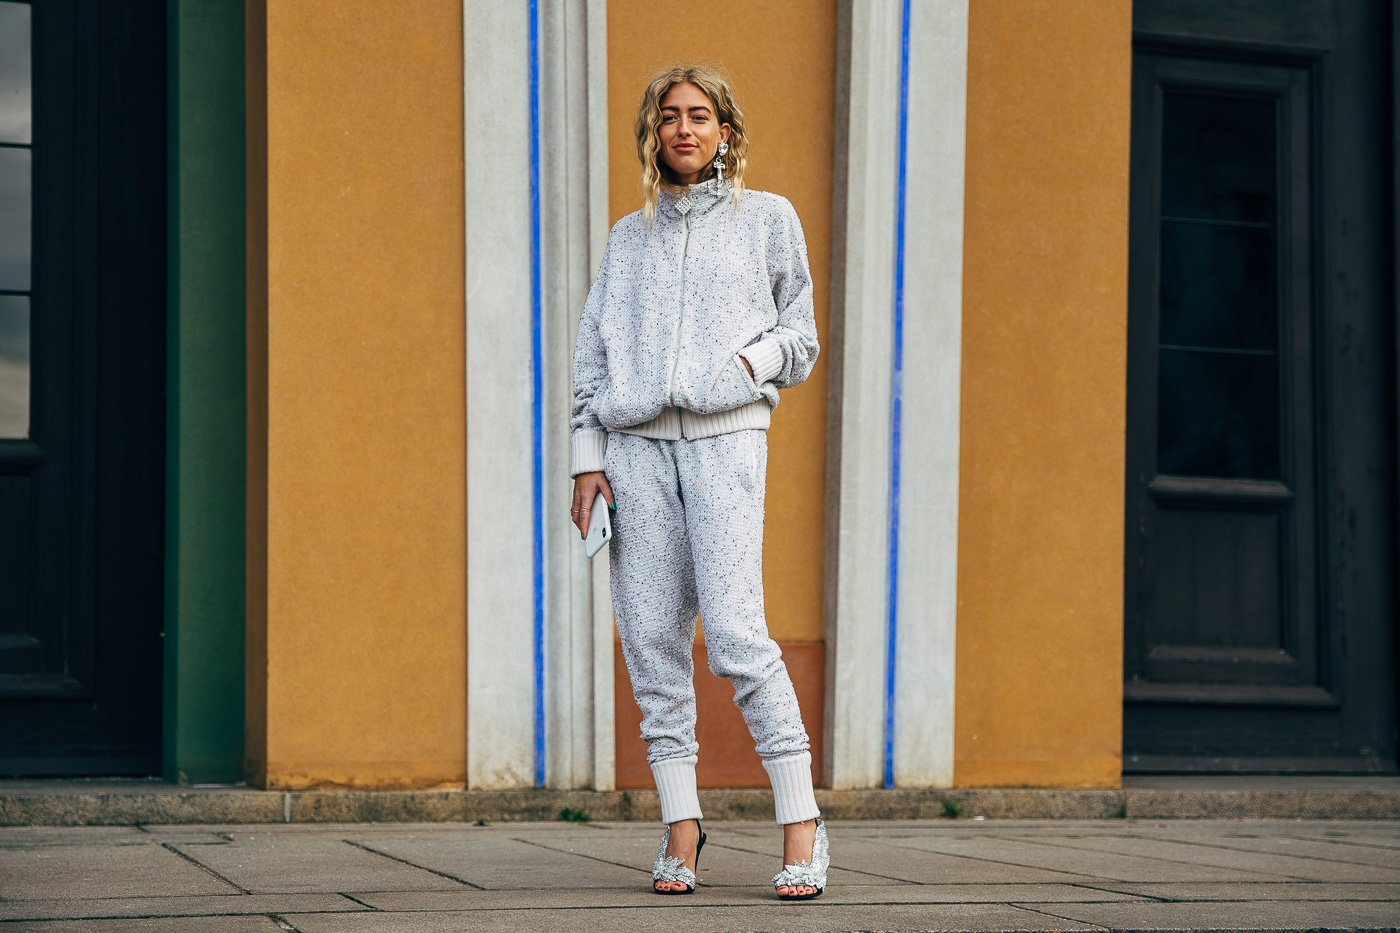 Copenhagen-Fall-19-day2-by-STYLEDUMONDE-Street-Style-Fashion-Photography20190130_48A4068NoWM.jpg